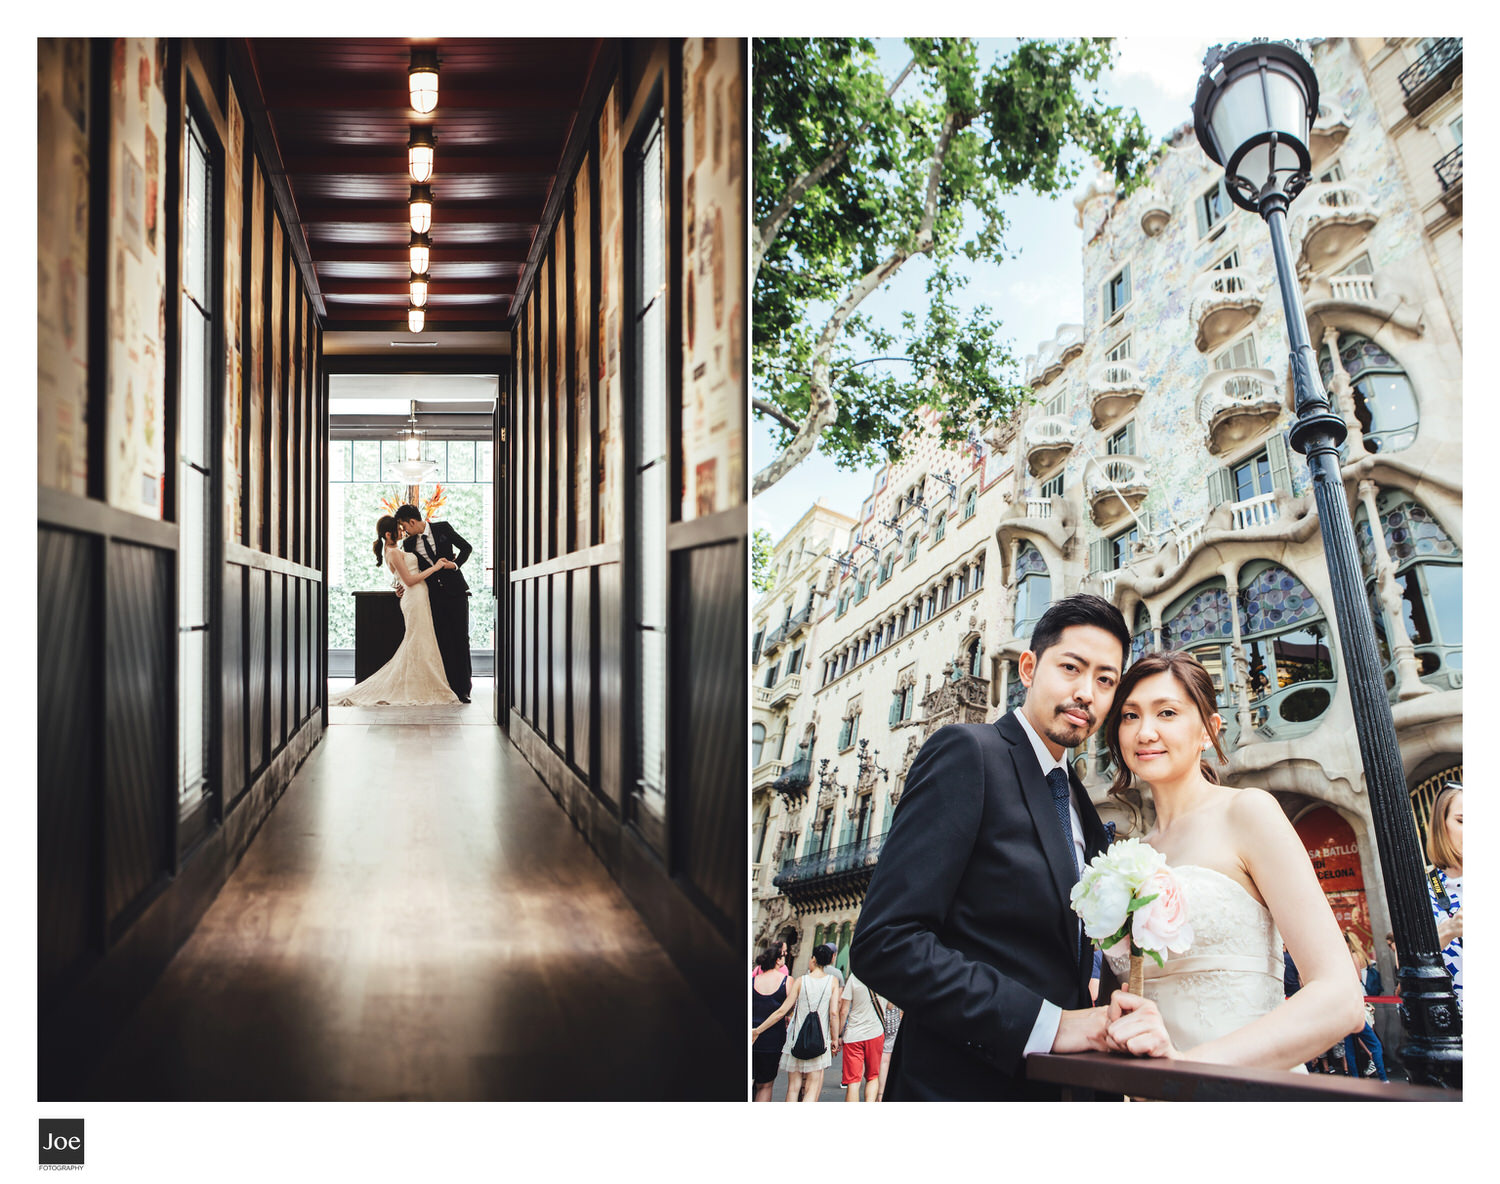 joe-fotography-30-barcelona-la-pedrera-pre-wedding-liwei.jpg